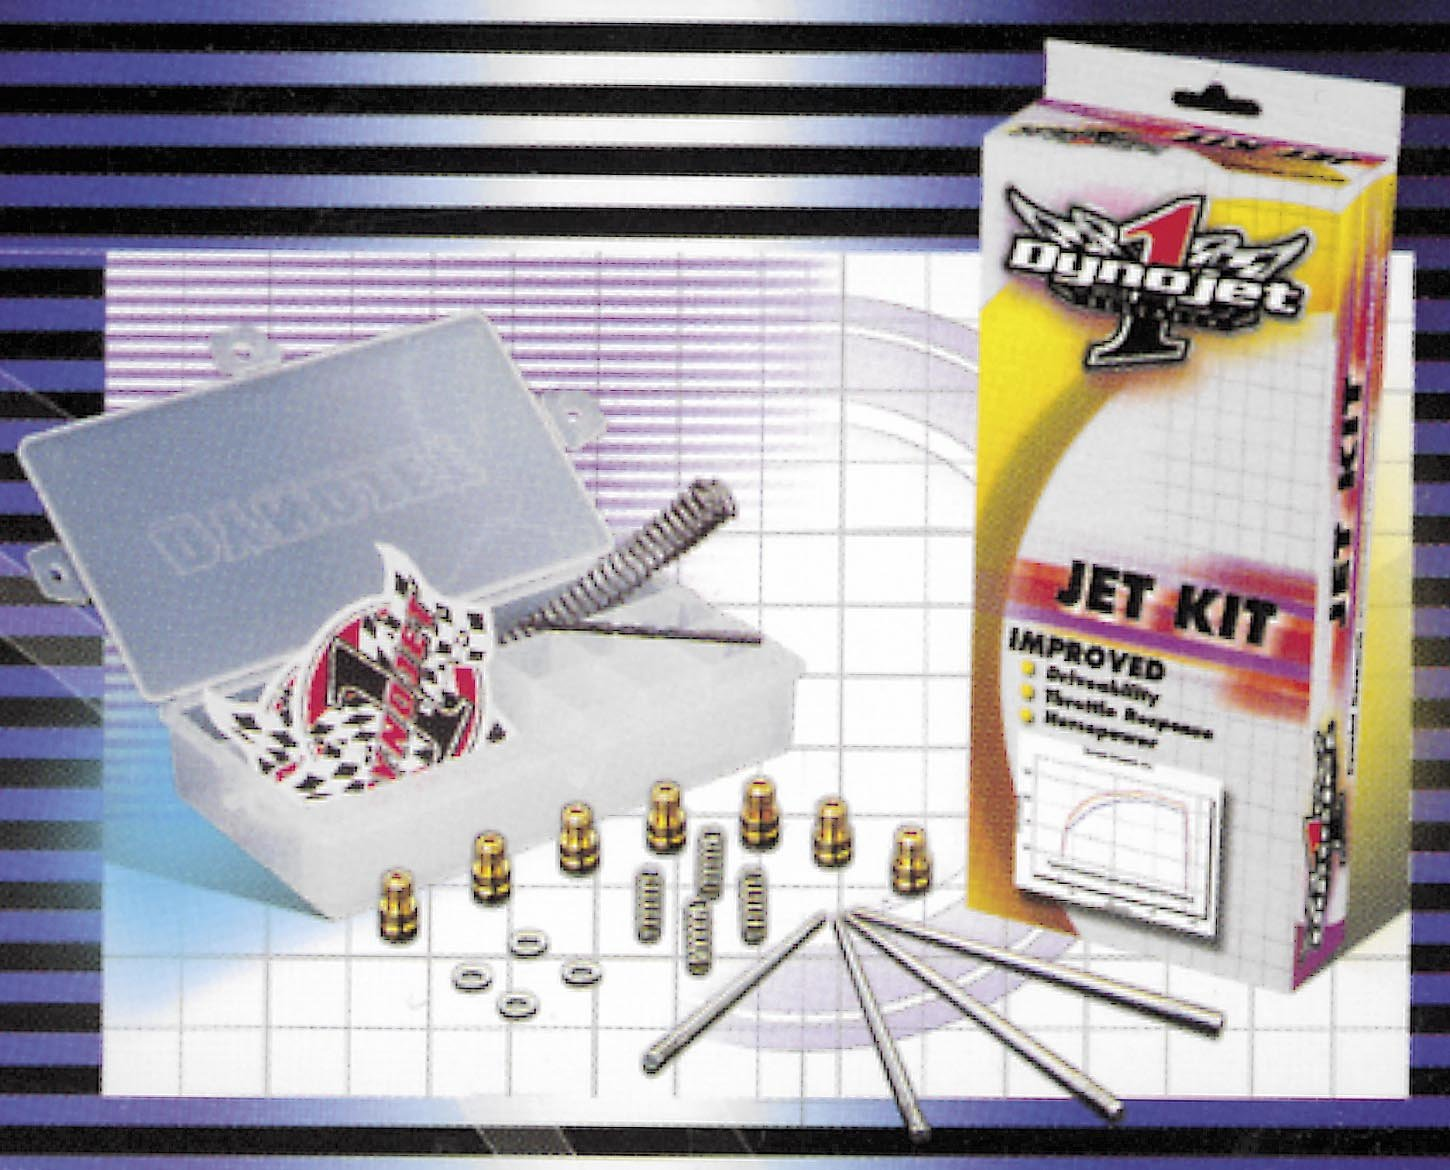 Stage One And Three Jet Kit For Honda CB750C Custom/CB750F Super Sport/CB900C Custom 1980-1982 / CB900F Super Sport 1981-1982 - Dynojet Research (Jet Kits) 1127 by Dynojet